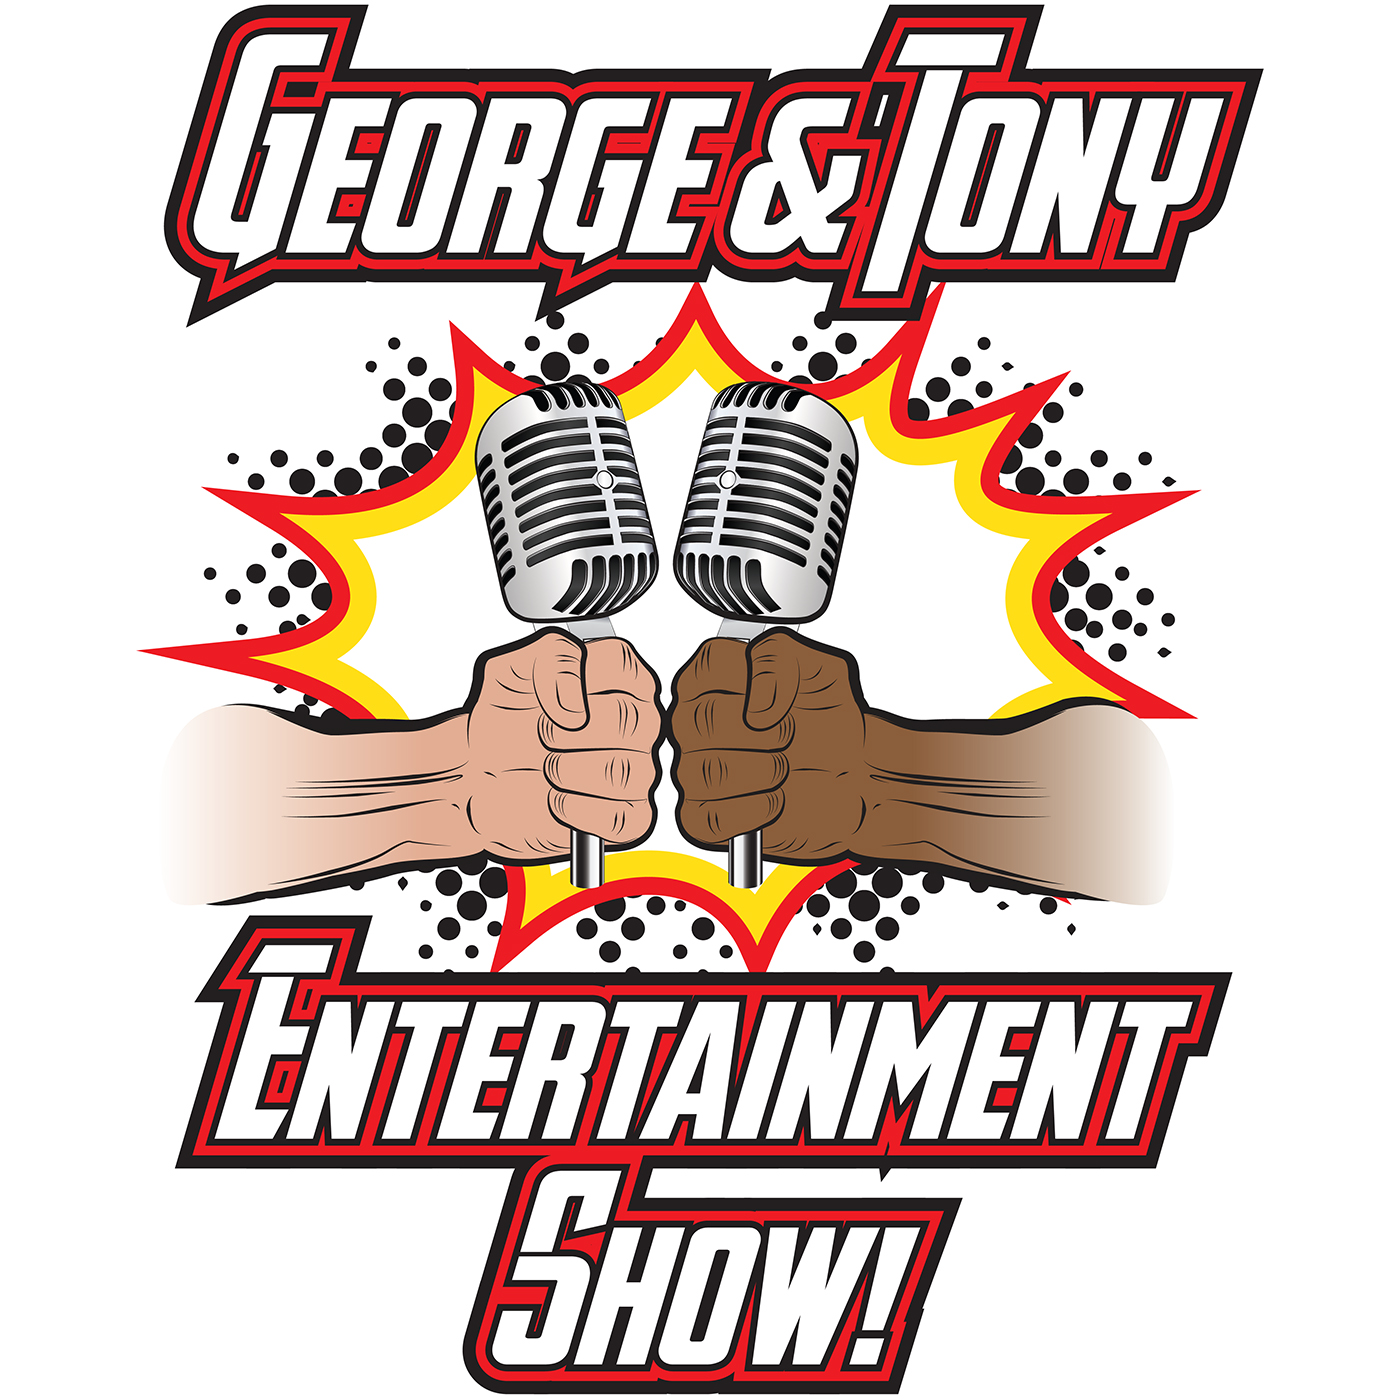 George and Tony Entertainment Show #108